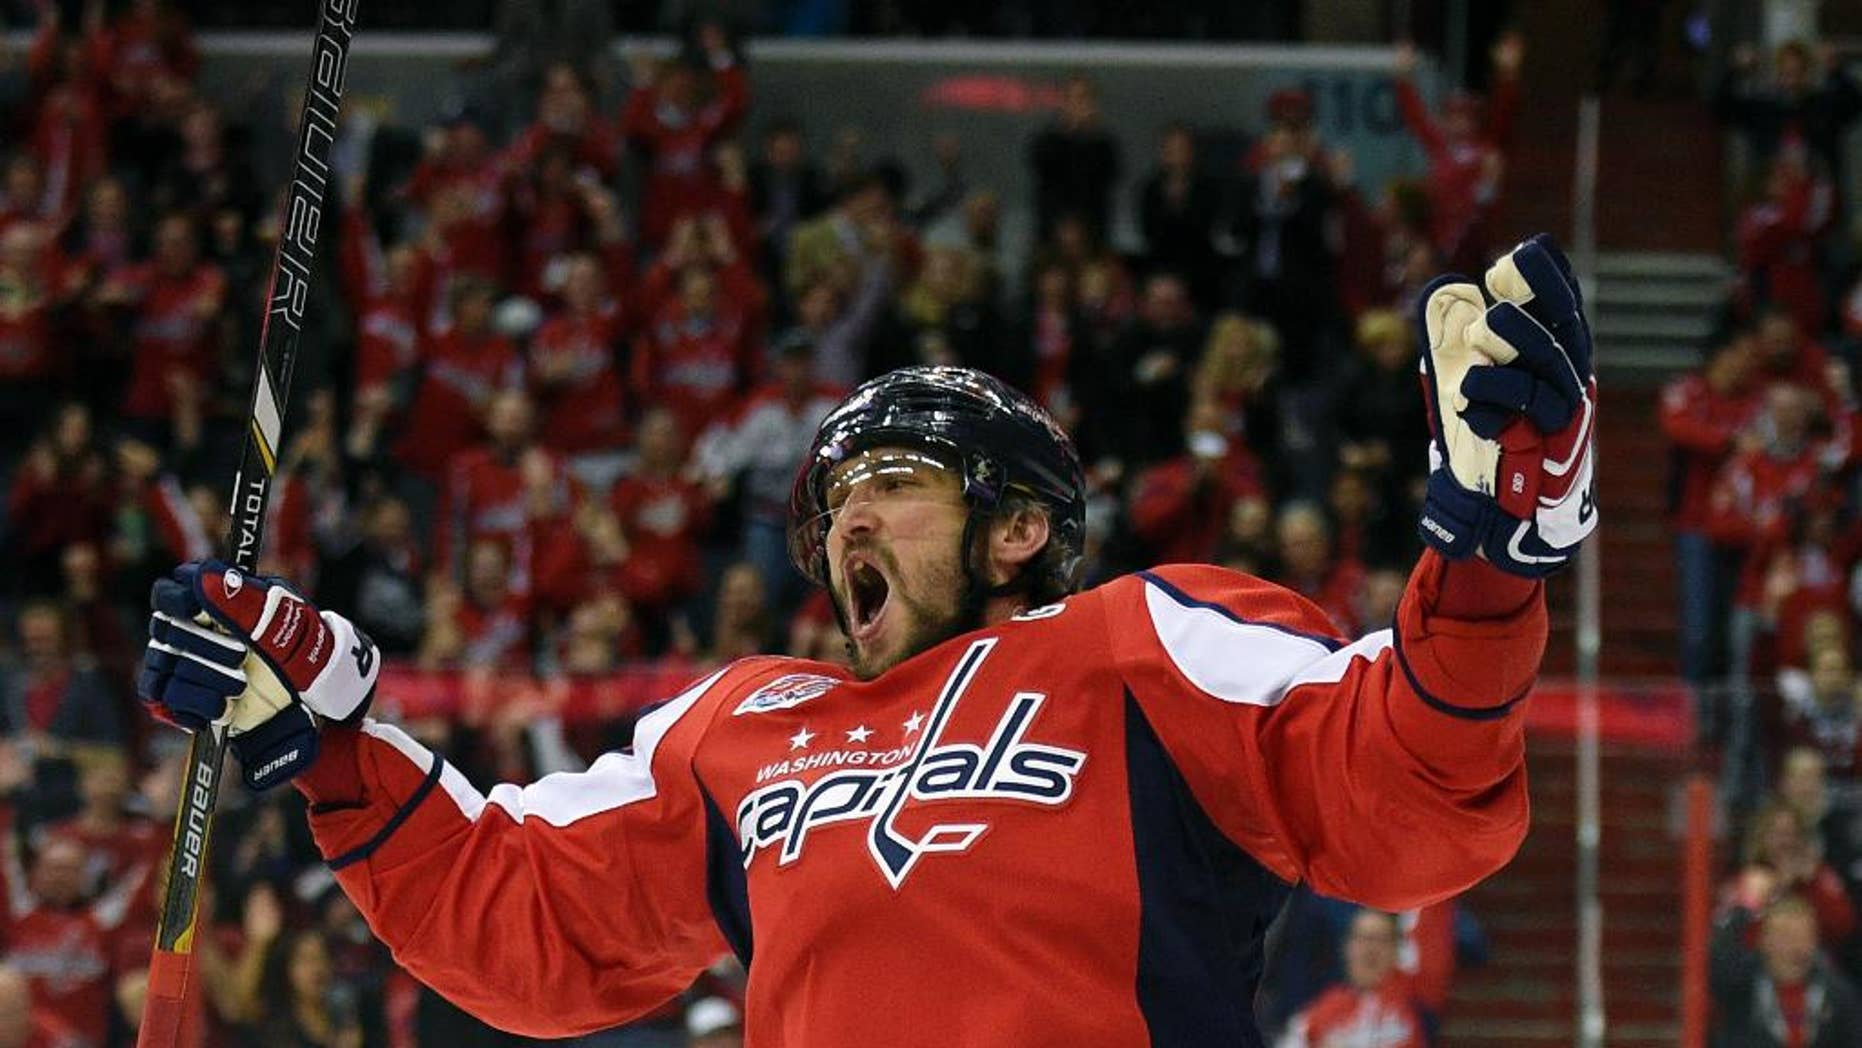 Washington Capitals left wing Alex Ovechkin (8), of Russia, celebrates his goal against the Carolina Hurricanes during the first period of an NHL hockey game, Tuesday, March 31, 2015, in Washington. It was Ovechkins' 50th goal of the year. (AP Photo/Nick Wass)